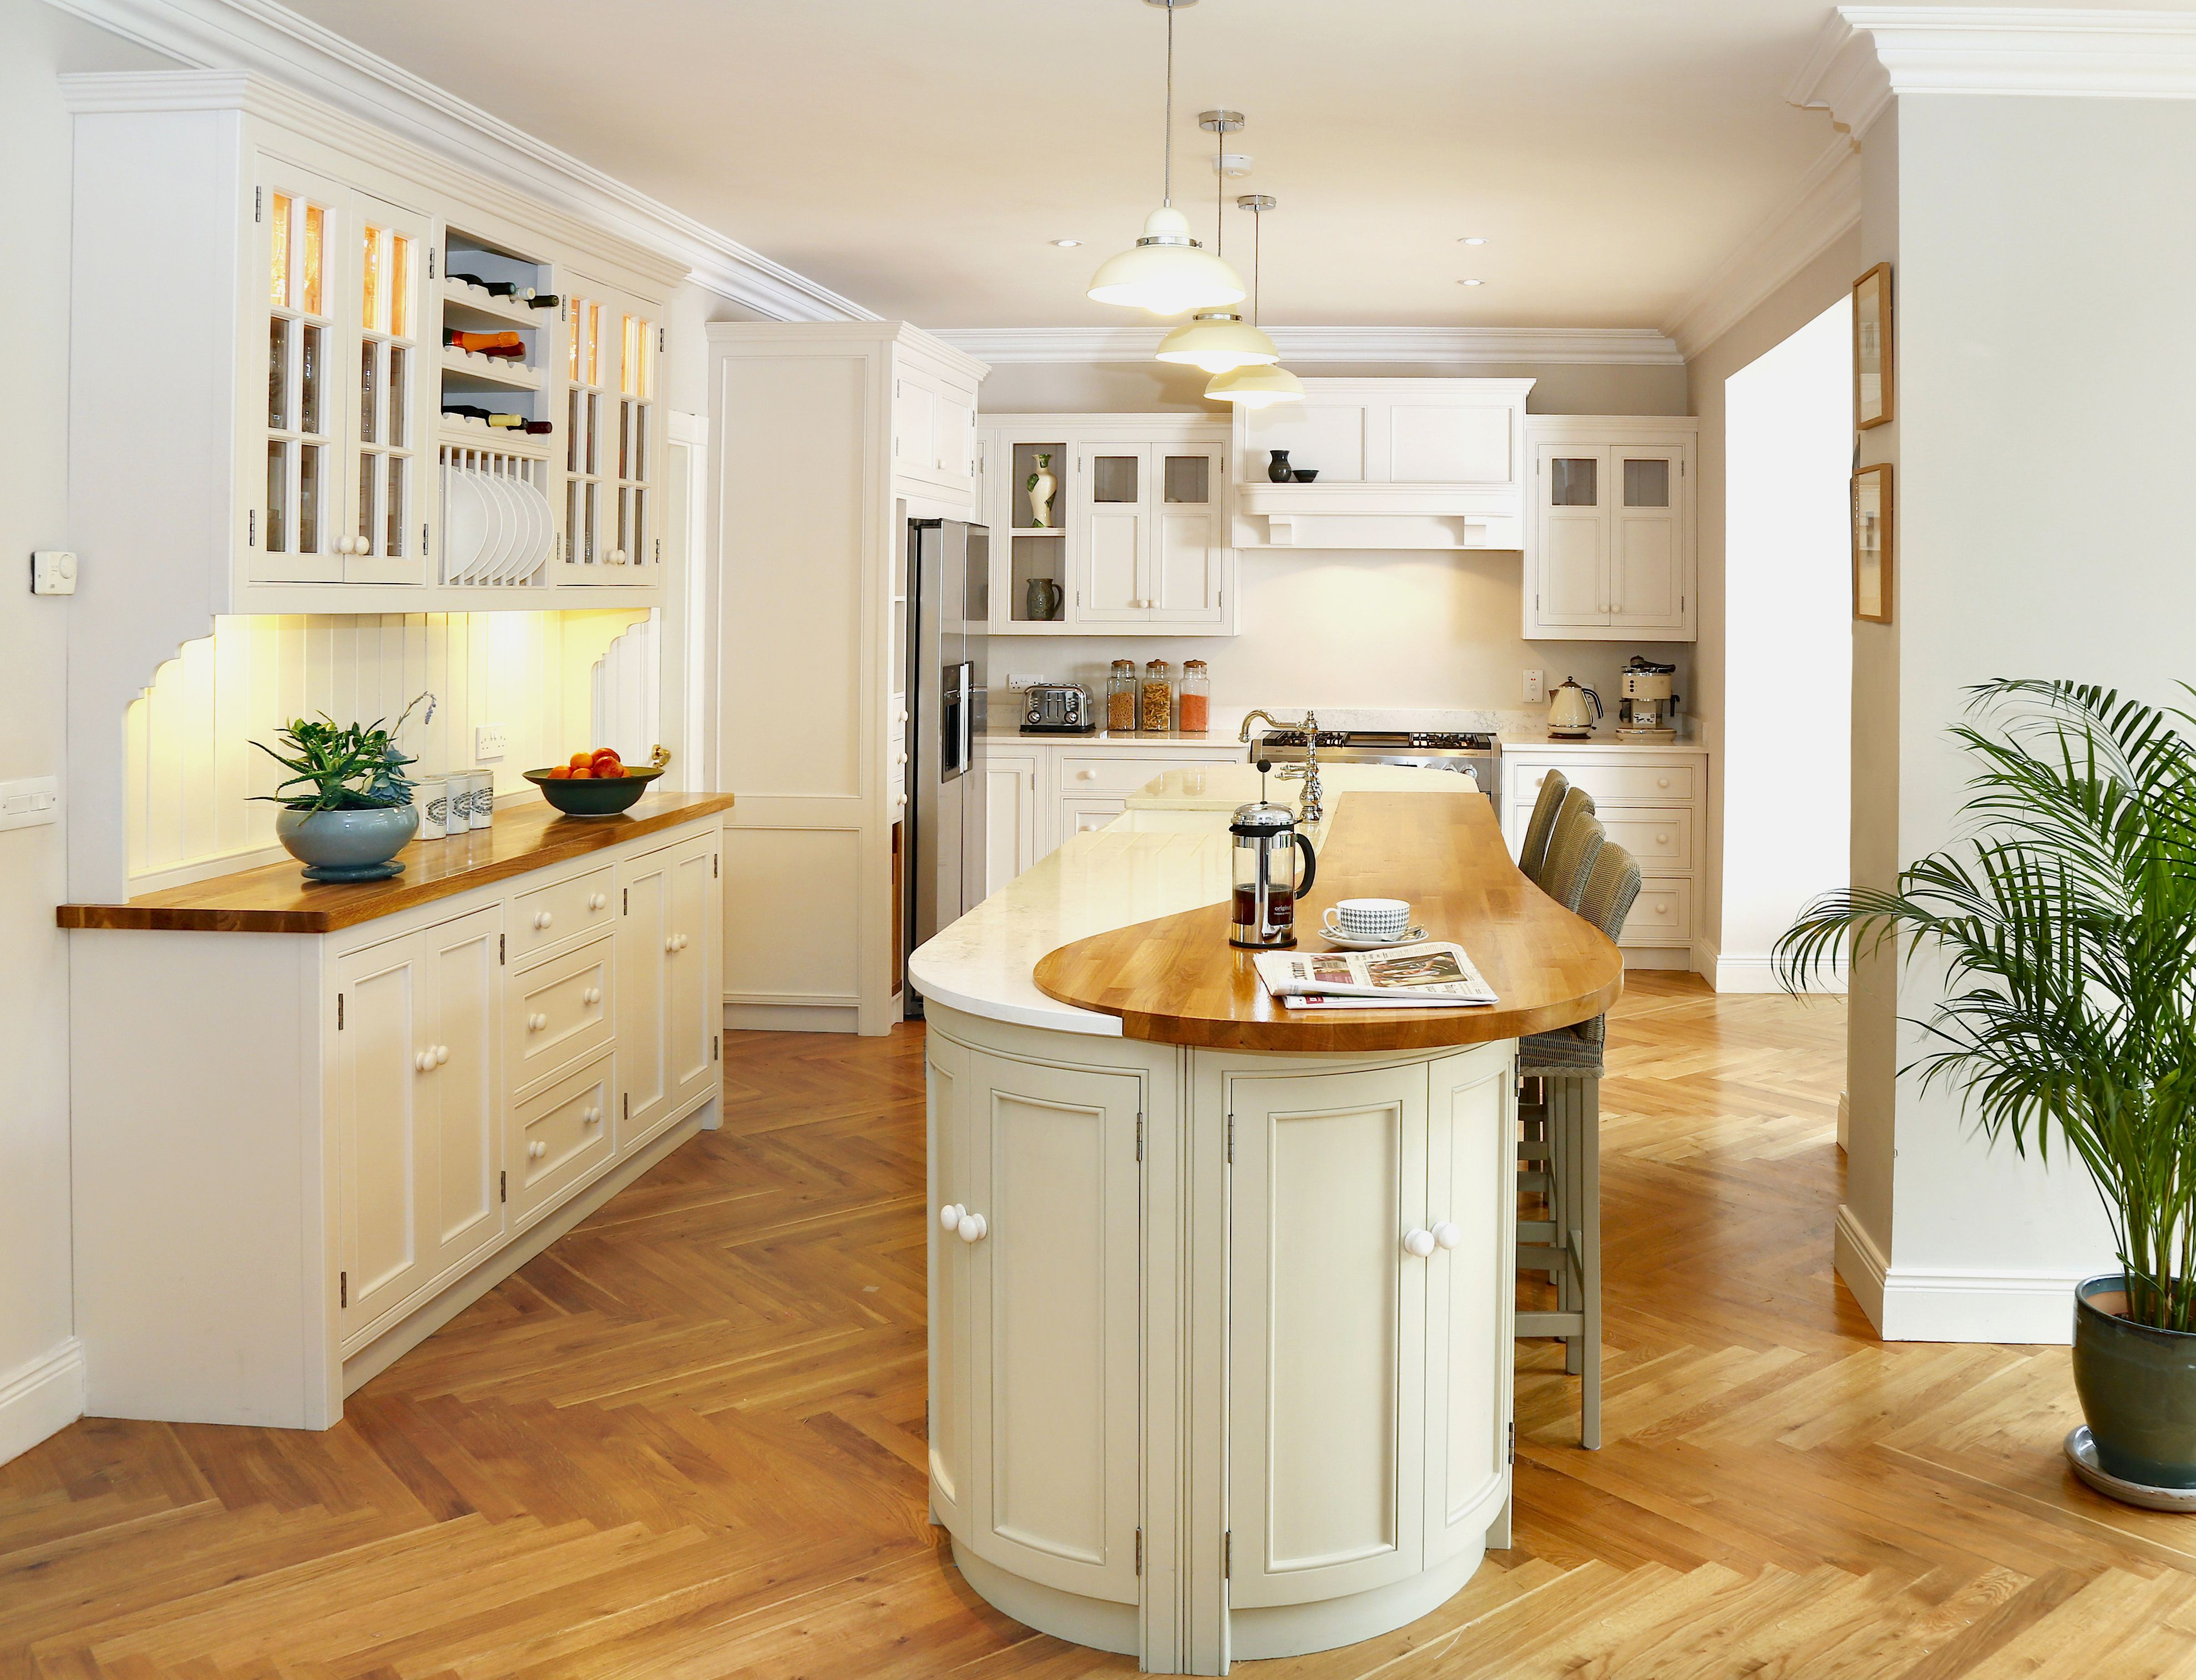 Kitchen Planning 17 Best Images About Kitchen Planning On Pinterest White Quartz